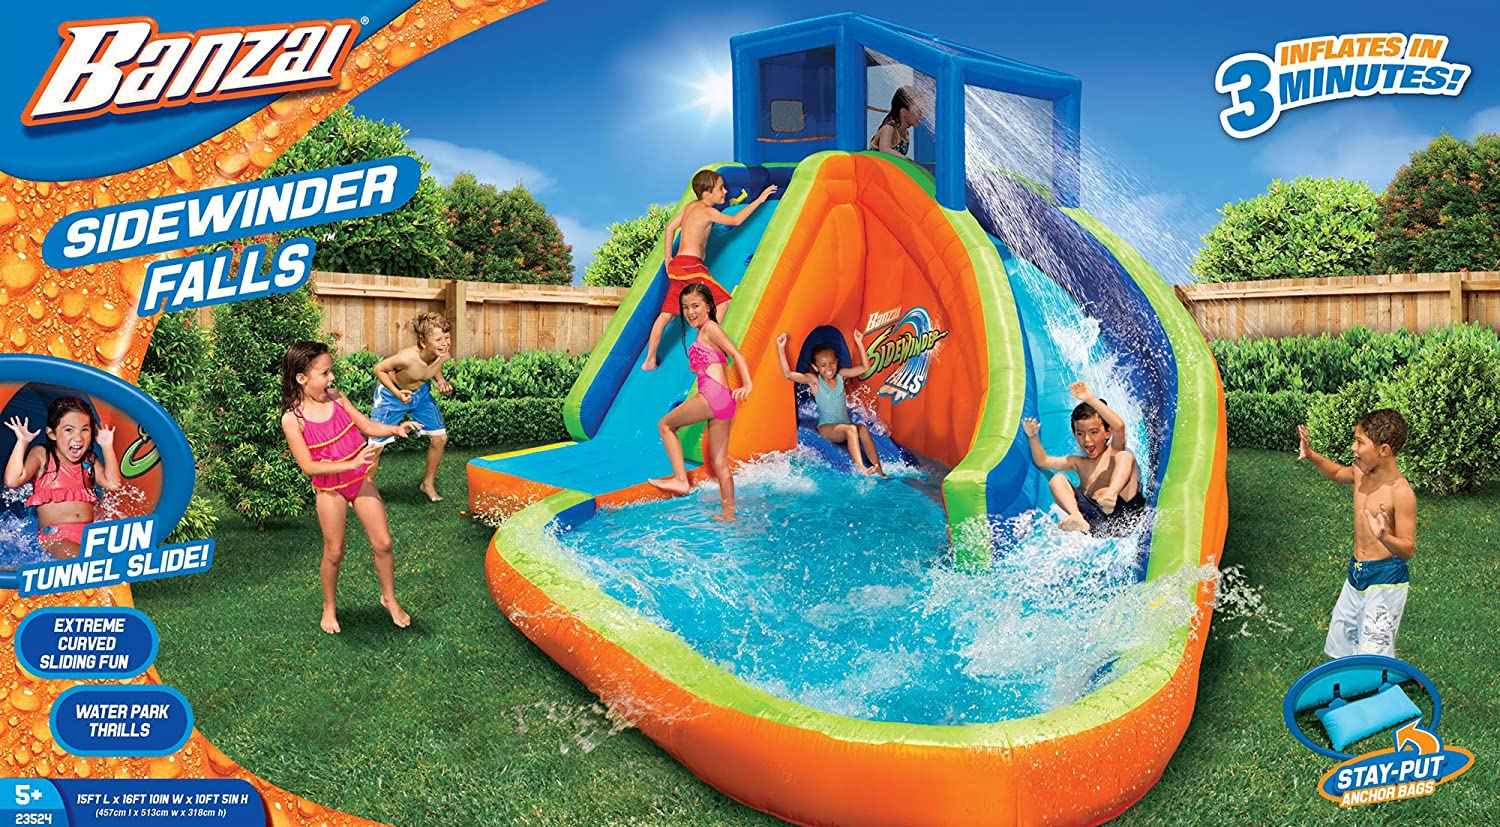 amazon com banzai sidewinder falls inflatable water park toys